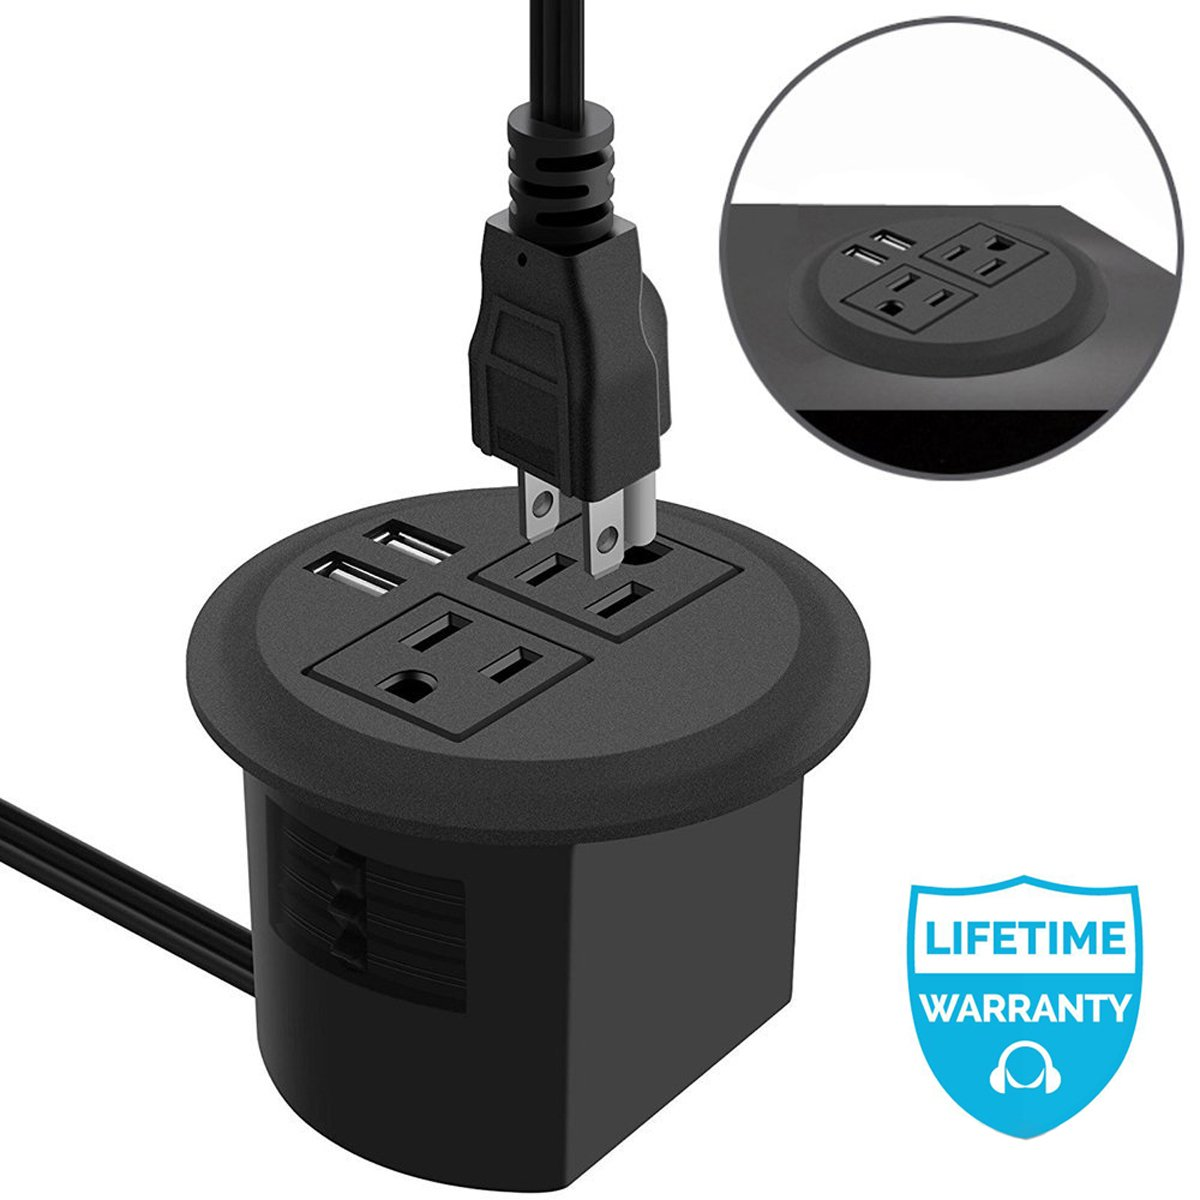 Power Grommet, Desktop Power Outlet 2 US Plugs & 2 USB Ports for Computer, Desk/Table, Kitchen, Office,Home,Hotel and More